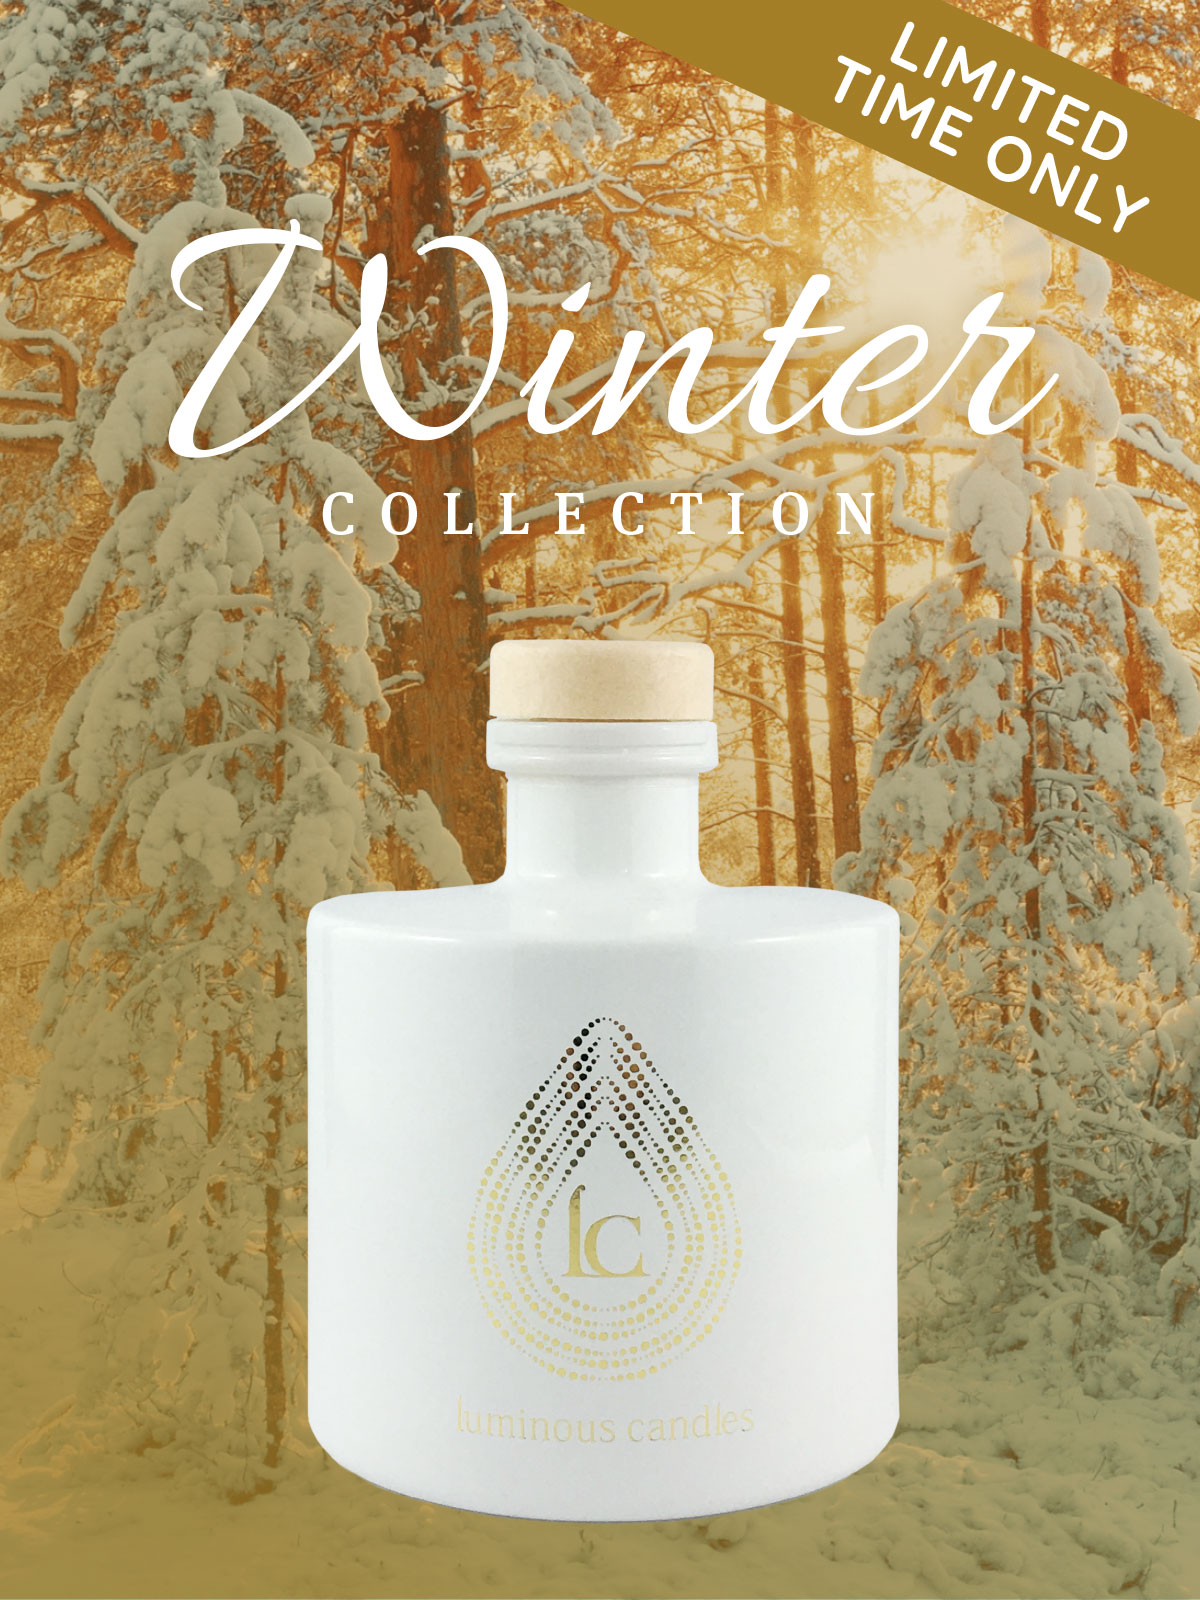 LC-Winter2020-Collection-Product-Image-7